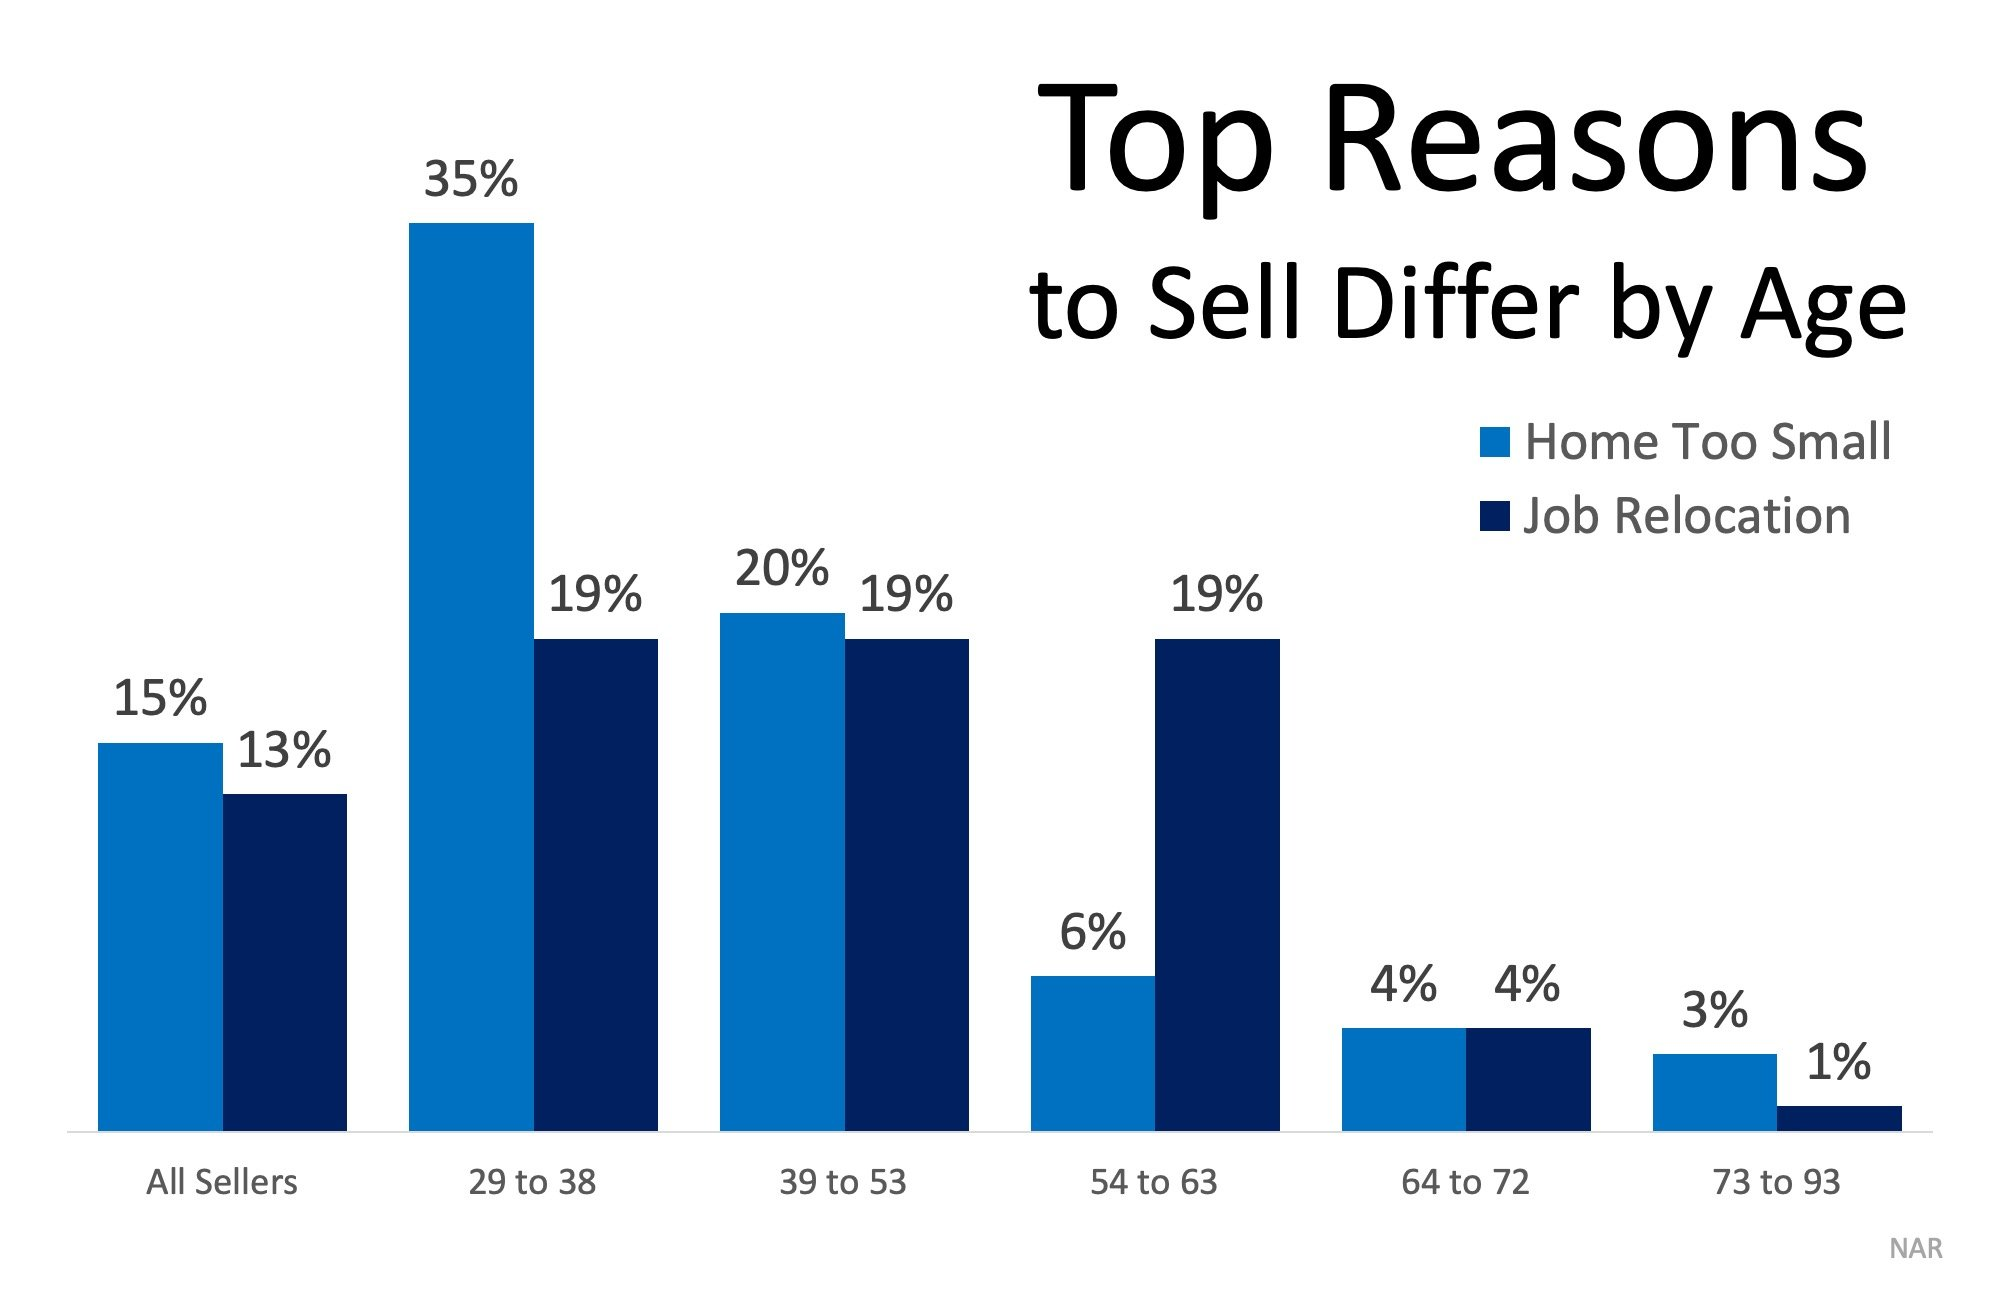 Top Reasons to sell differ by age